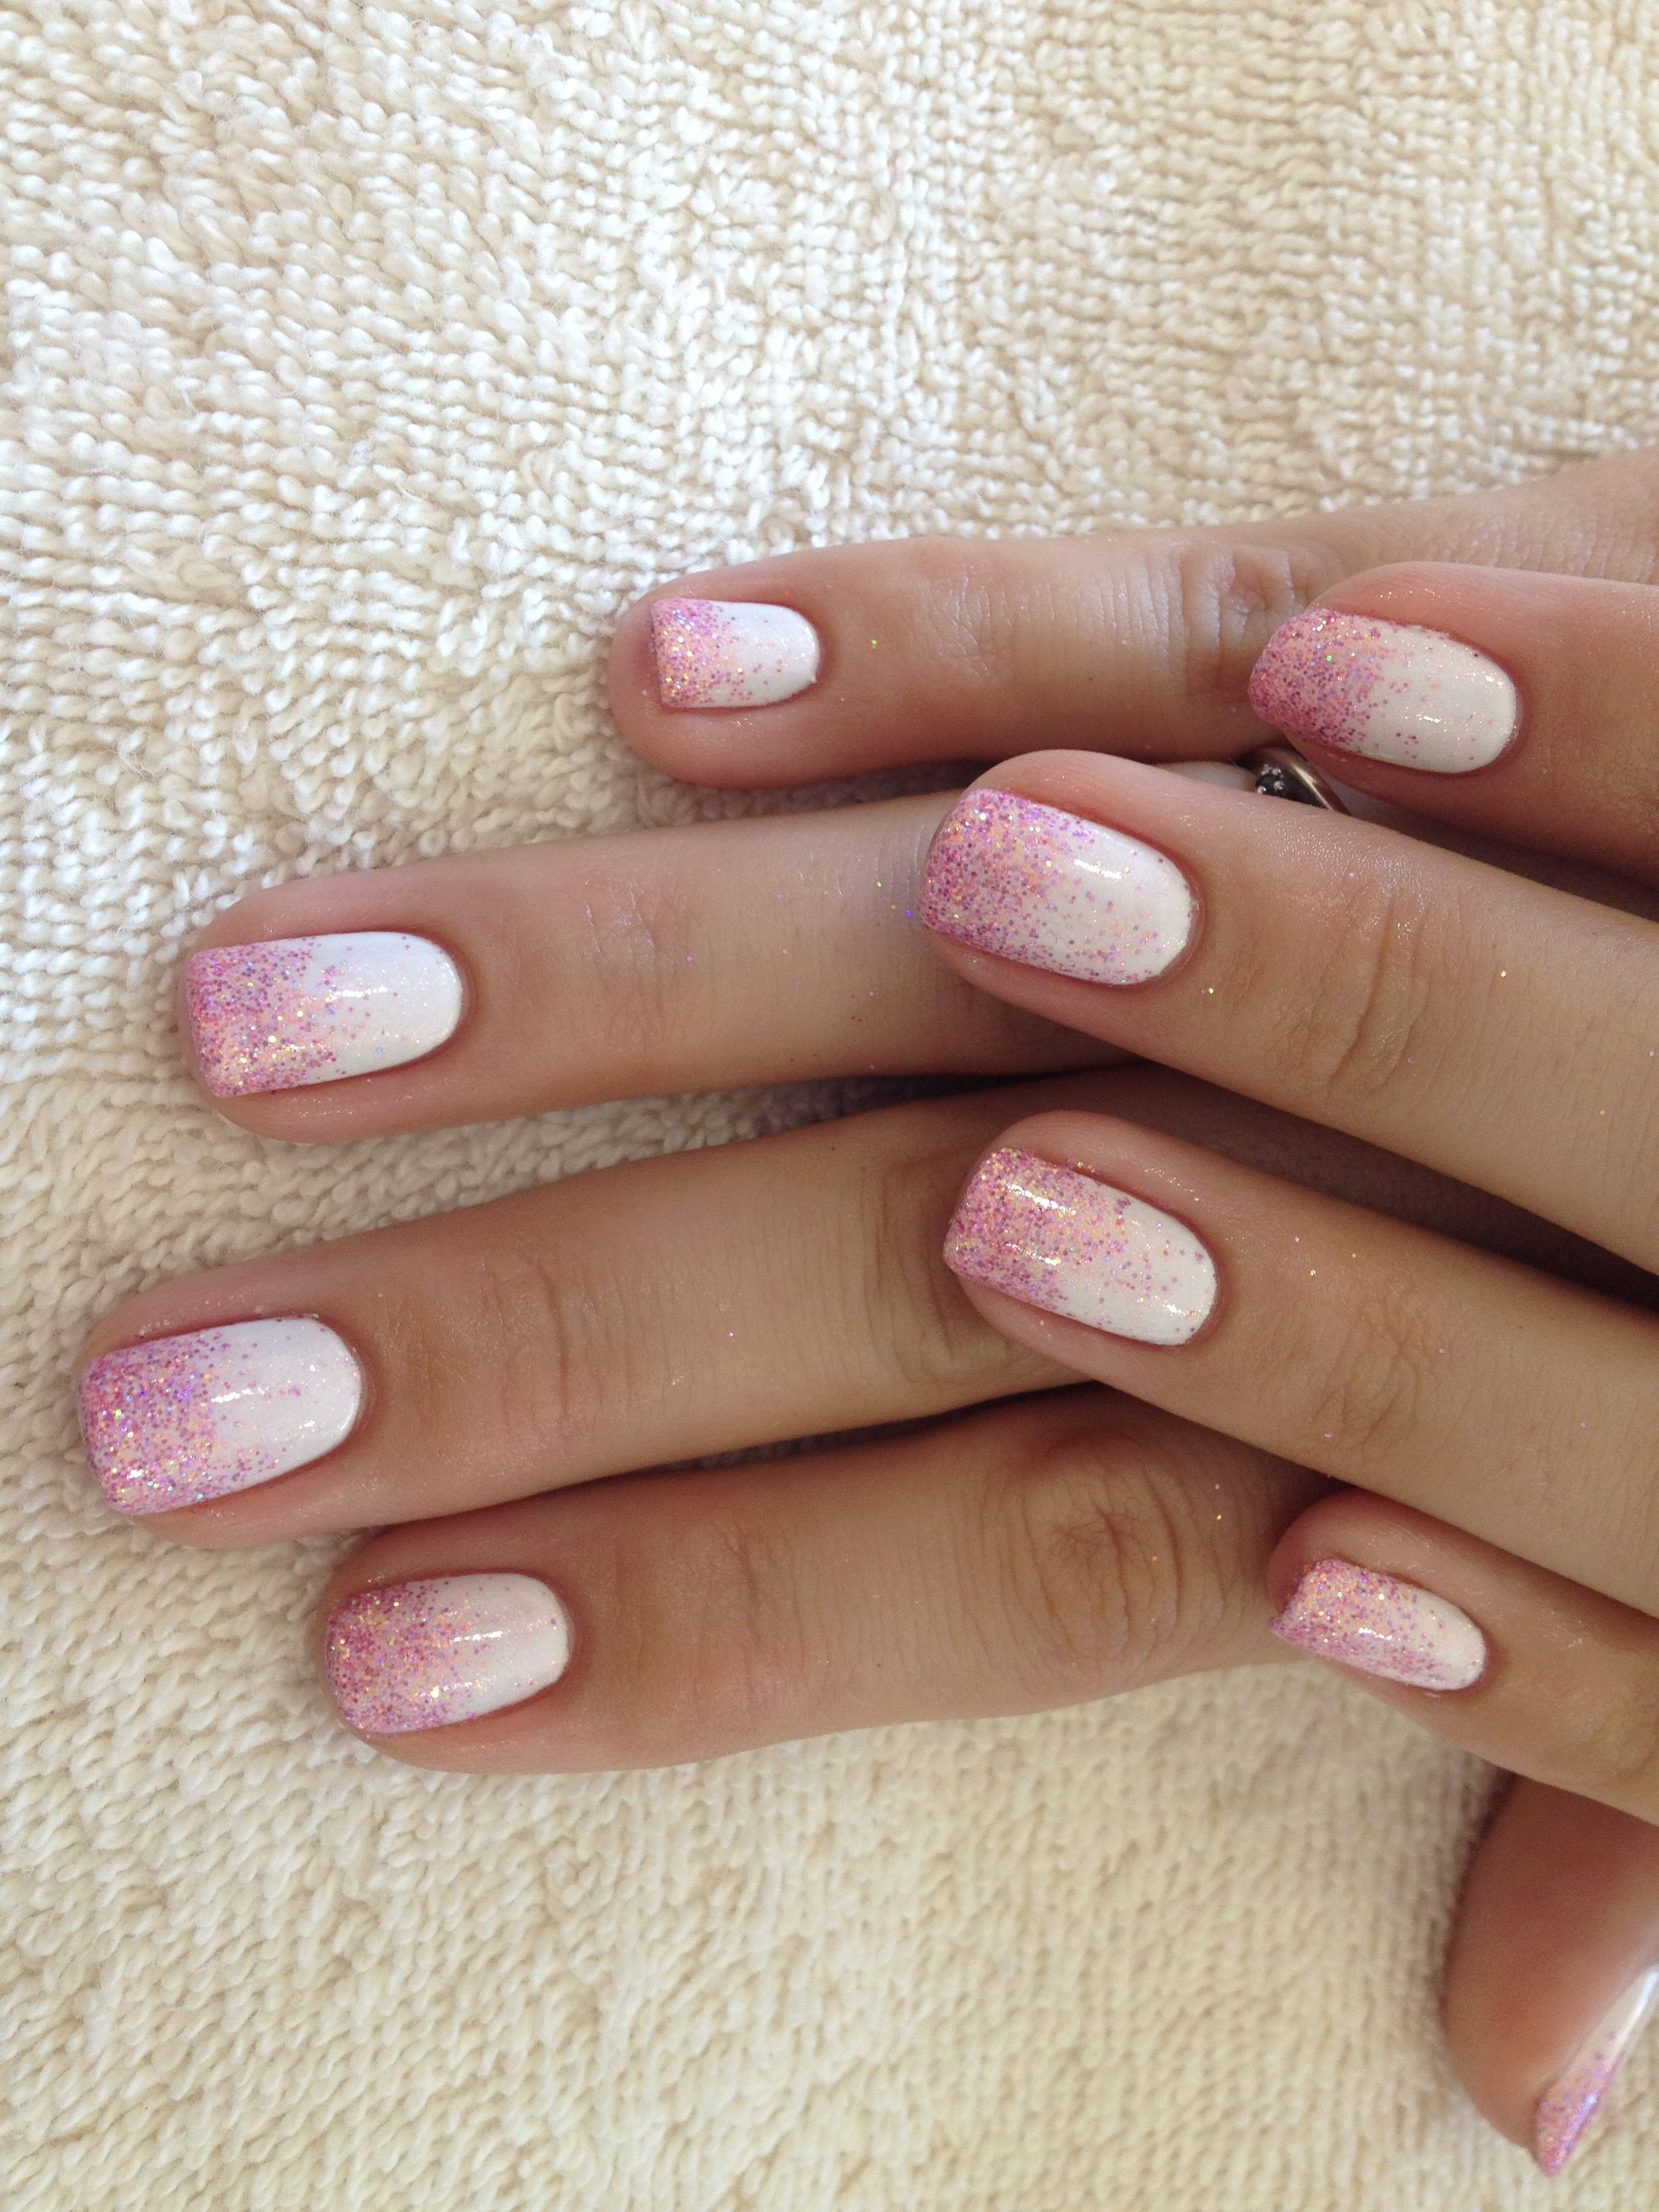 White Gel Nails With Pink Glitter On Tips Its Cute And I Usually Not